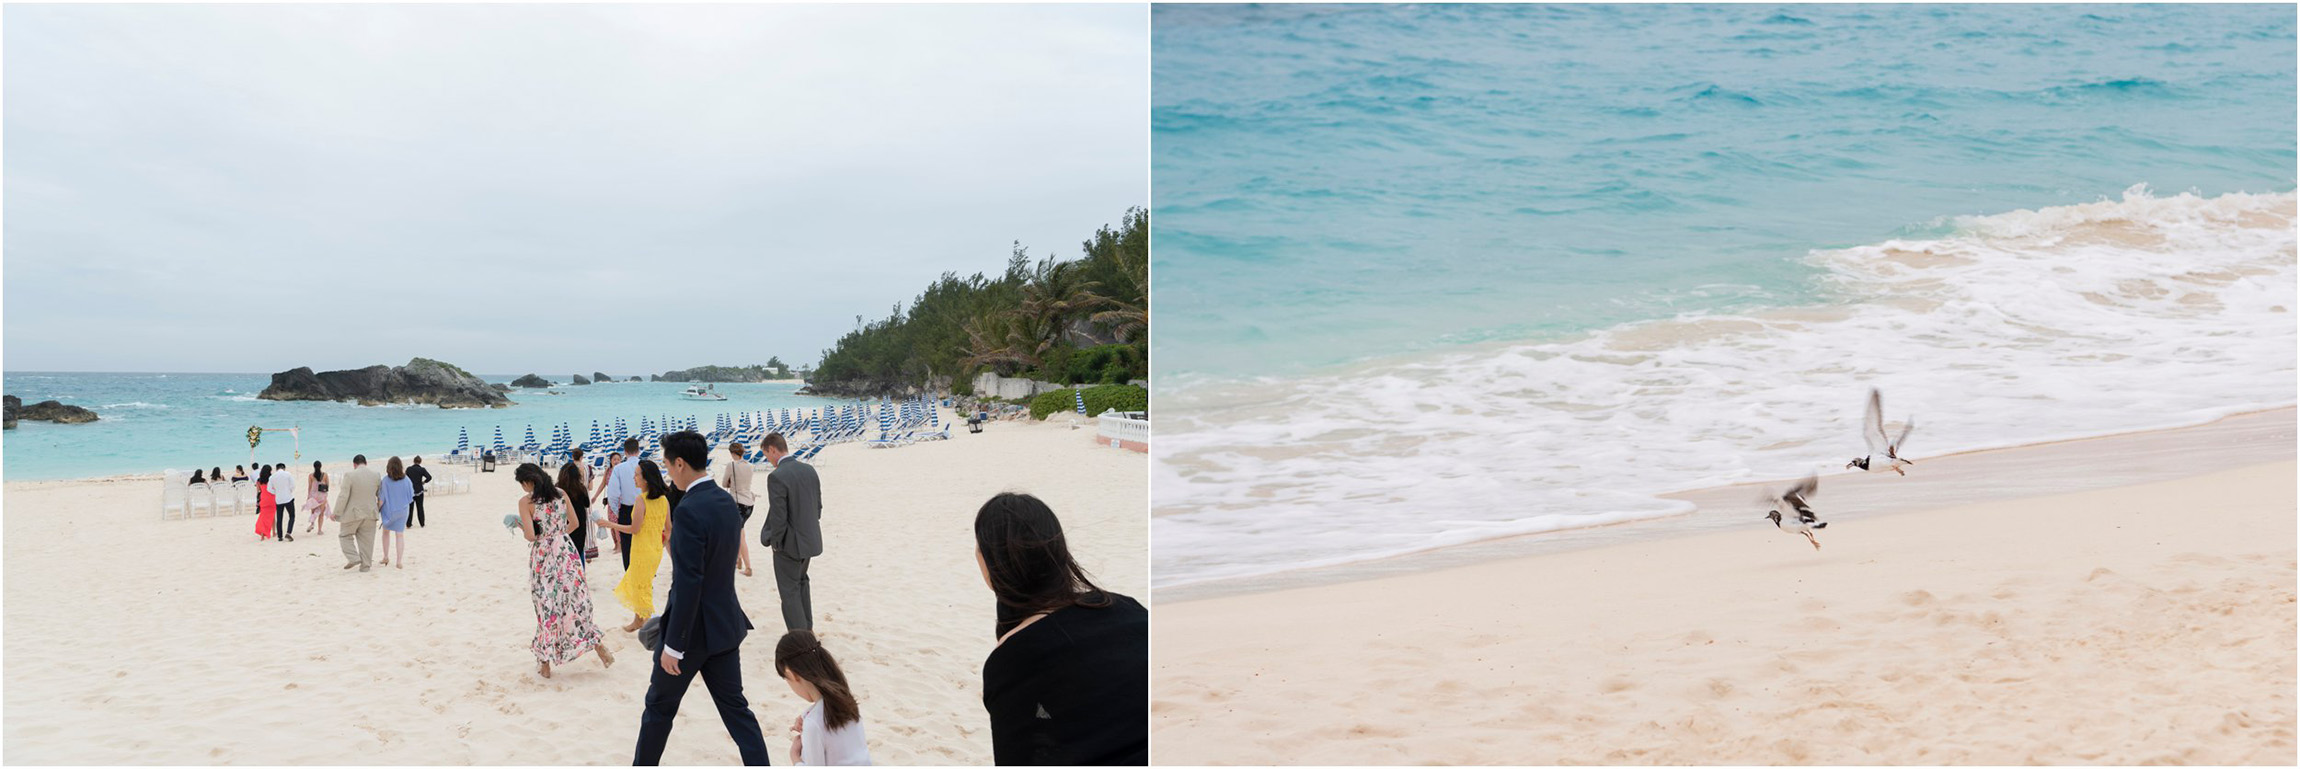 ©FianderFoto_Bermuda Wedding Photographer_Fairmont Southampton_Amy_Wilson_058.jpg